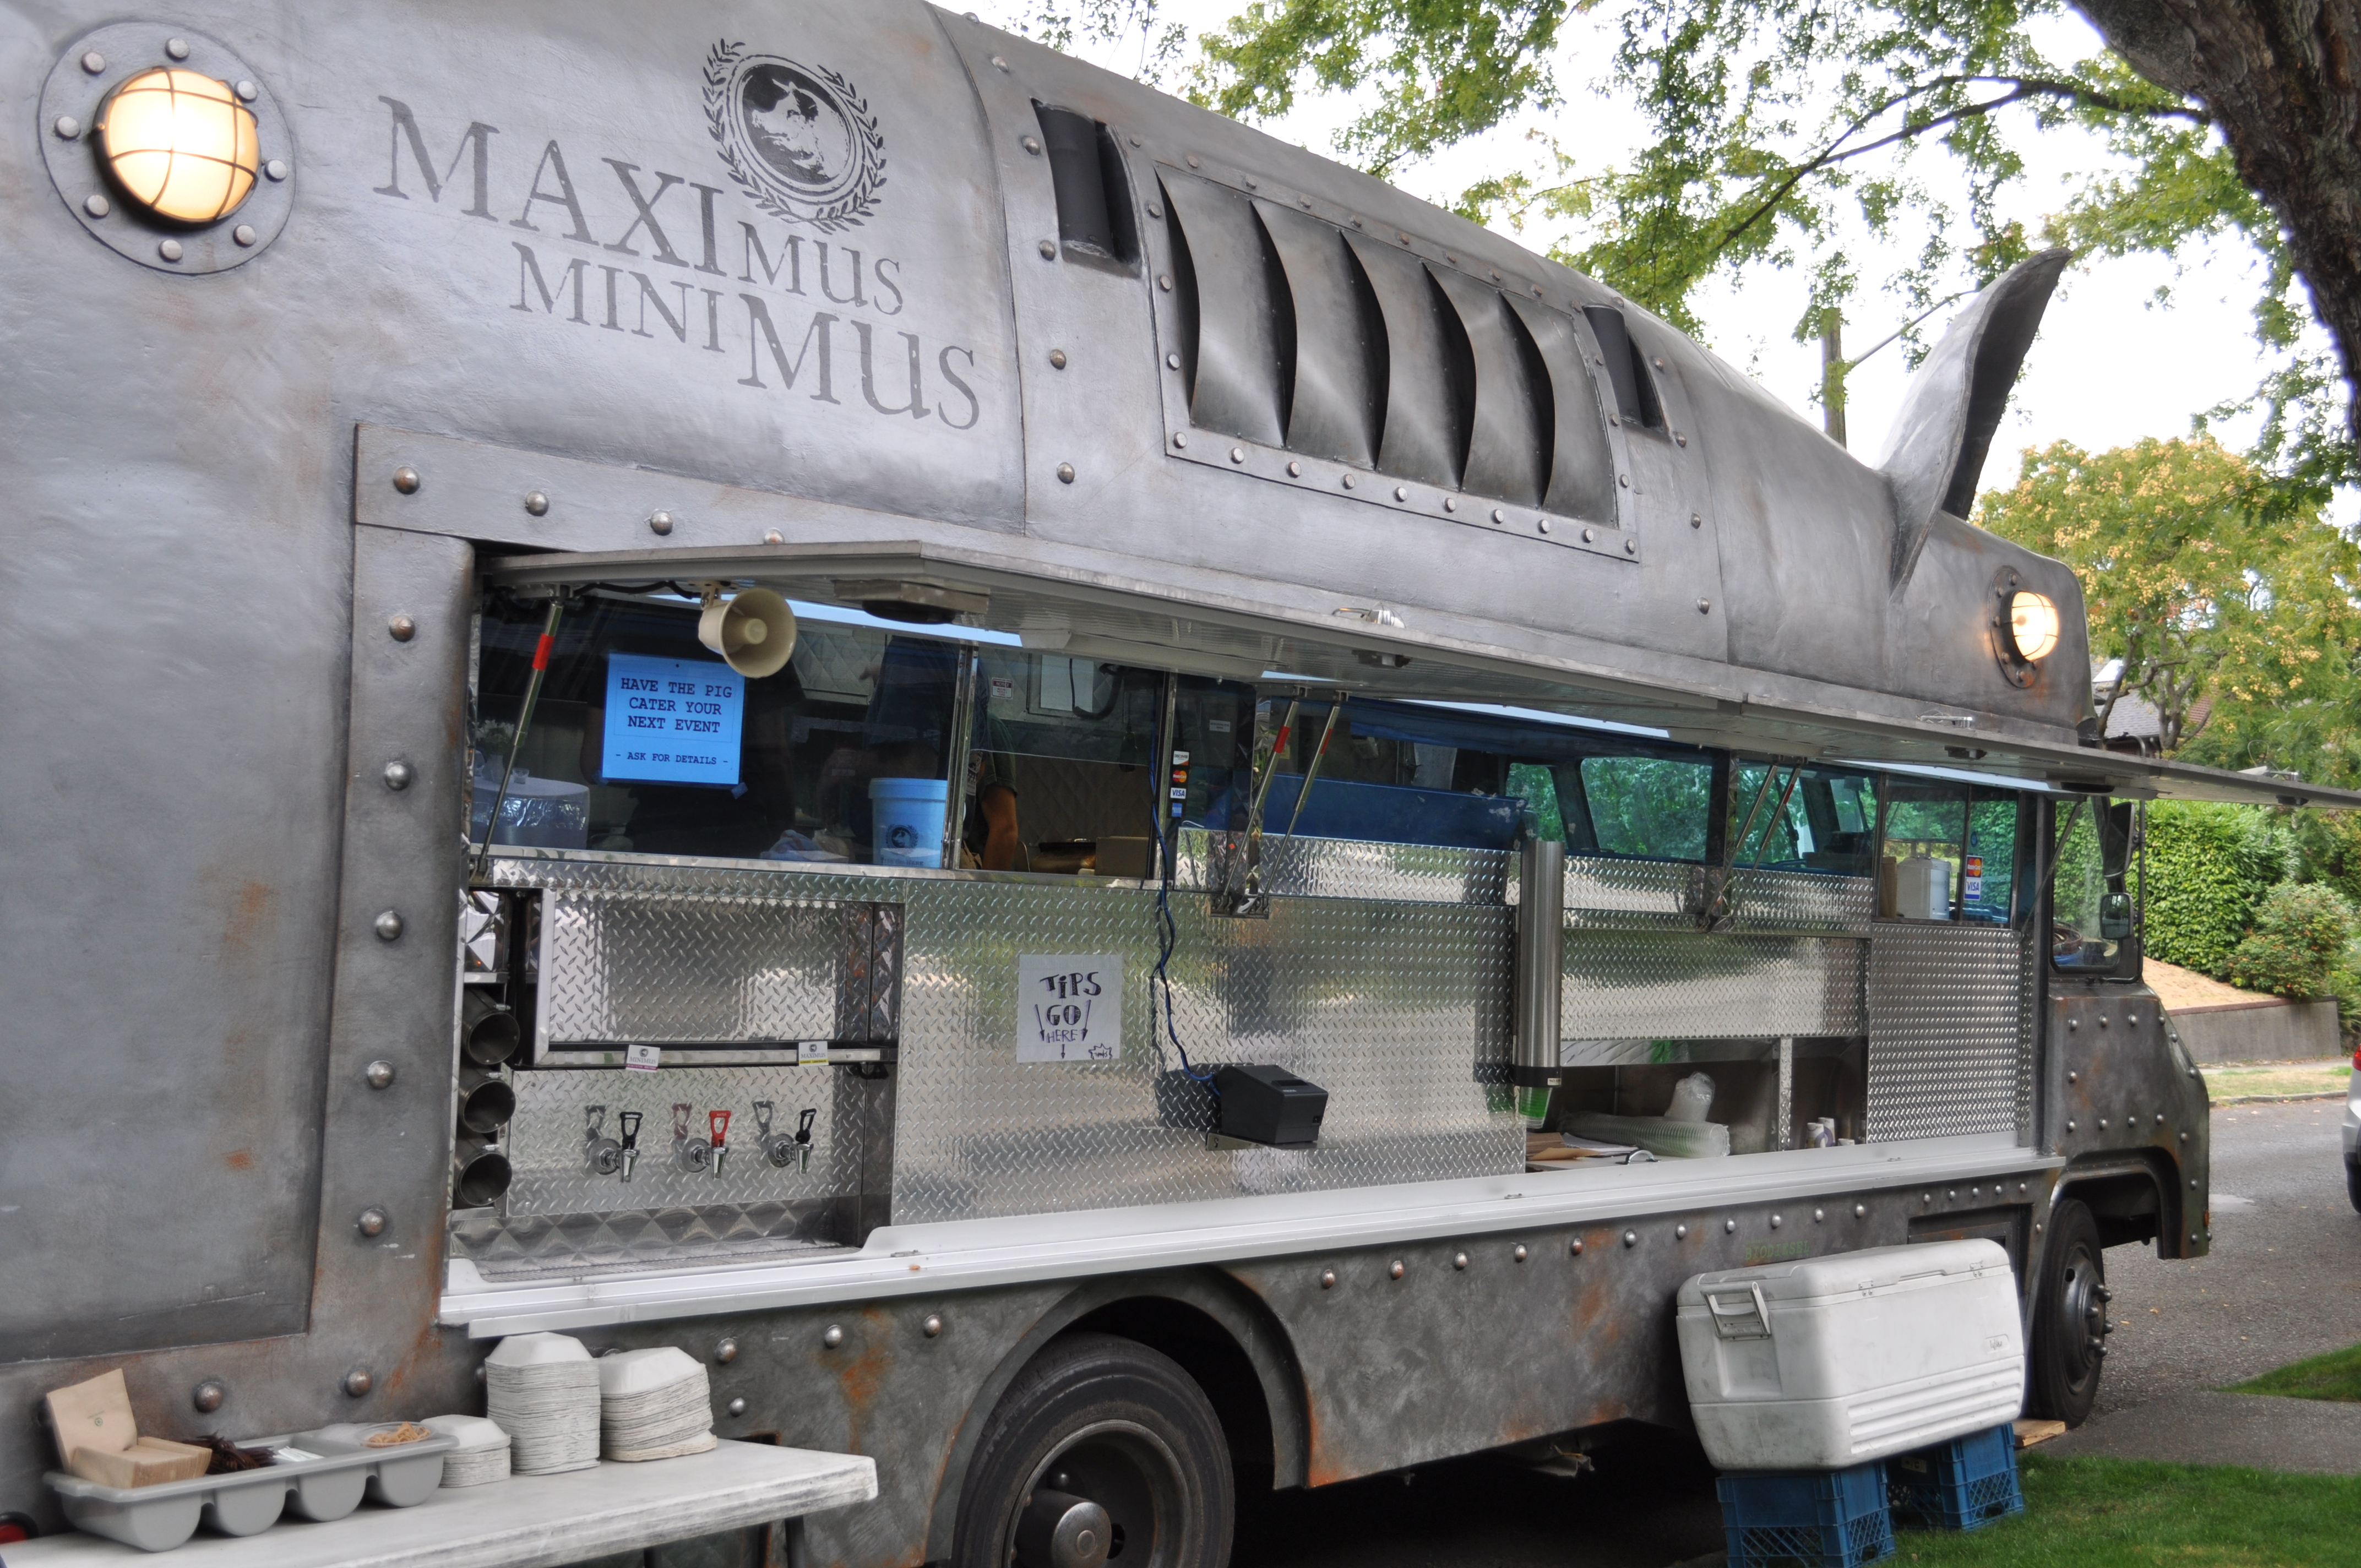 file seattle maximus minimus food truck wikimedia commons. Black Bedroom Furniture Sets. Home Design Ideas